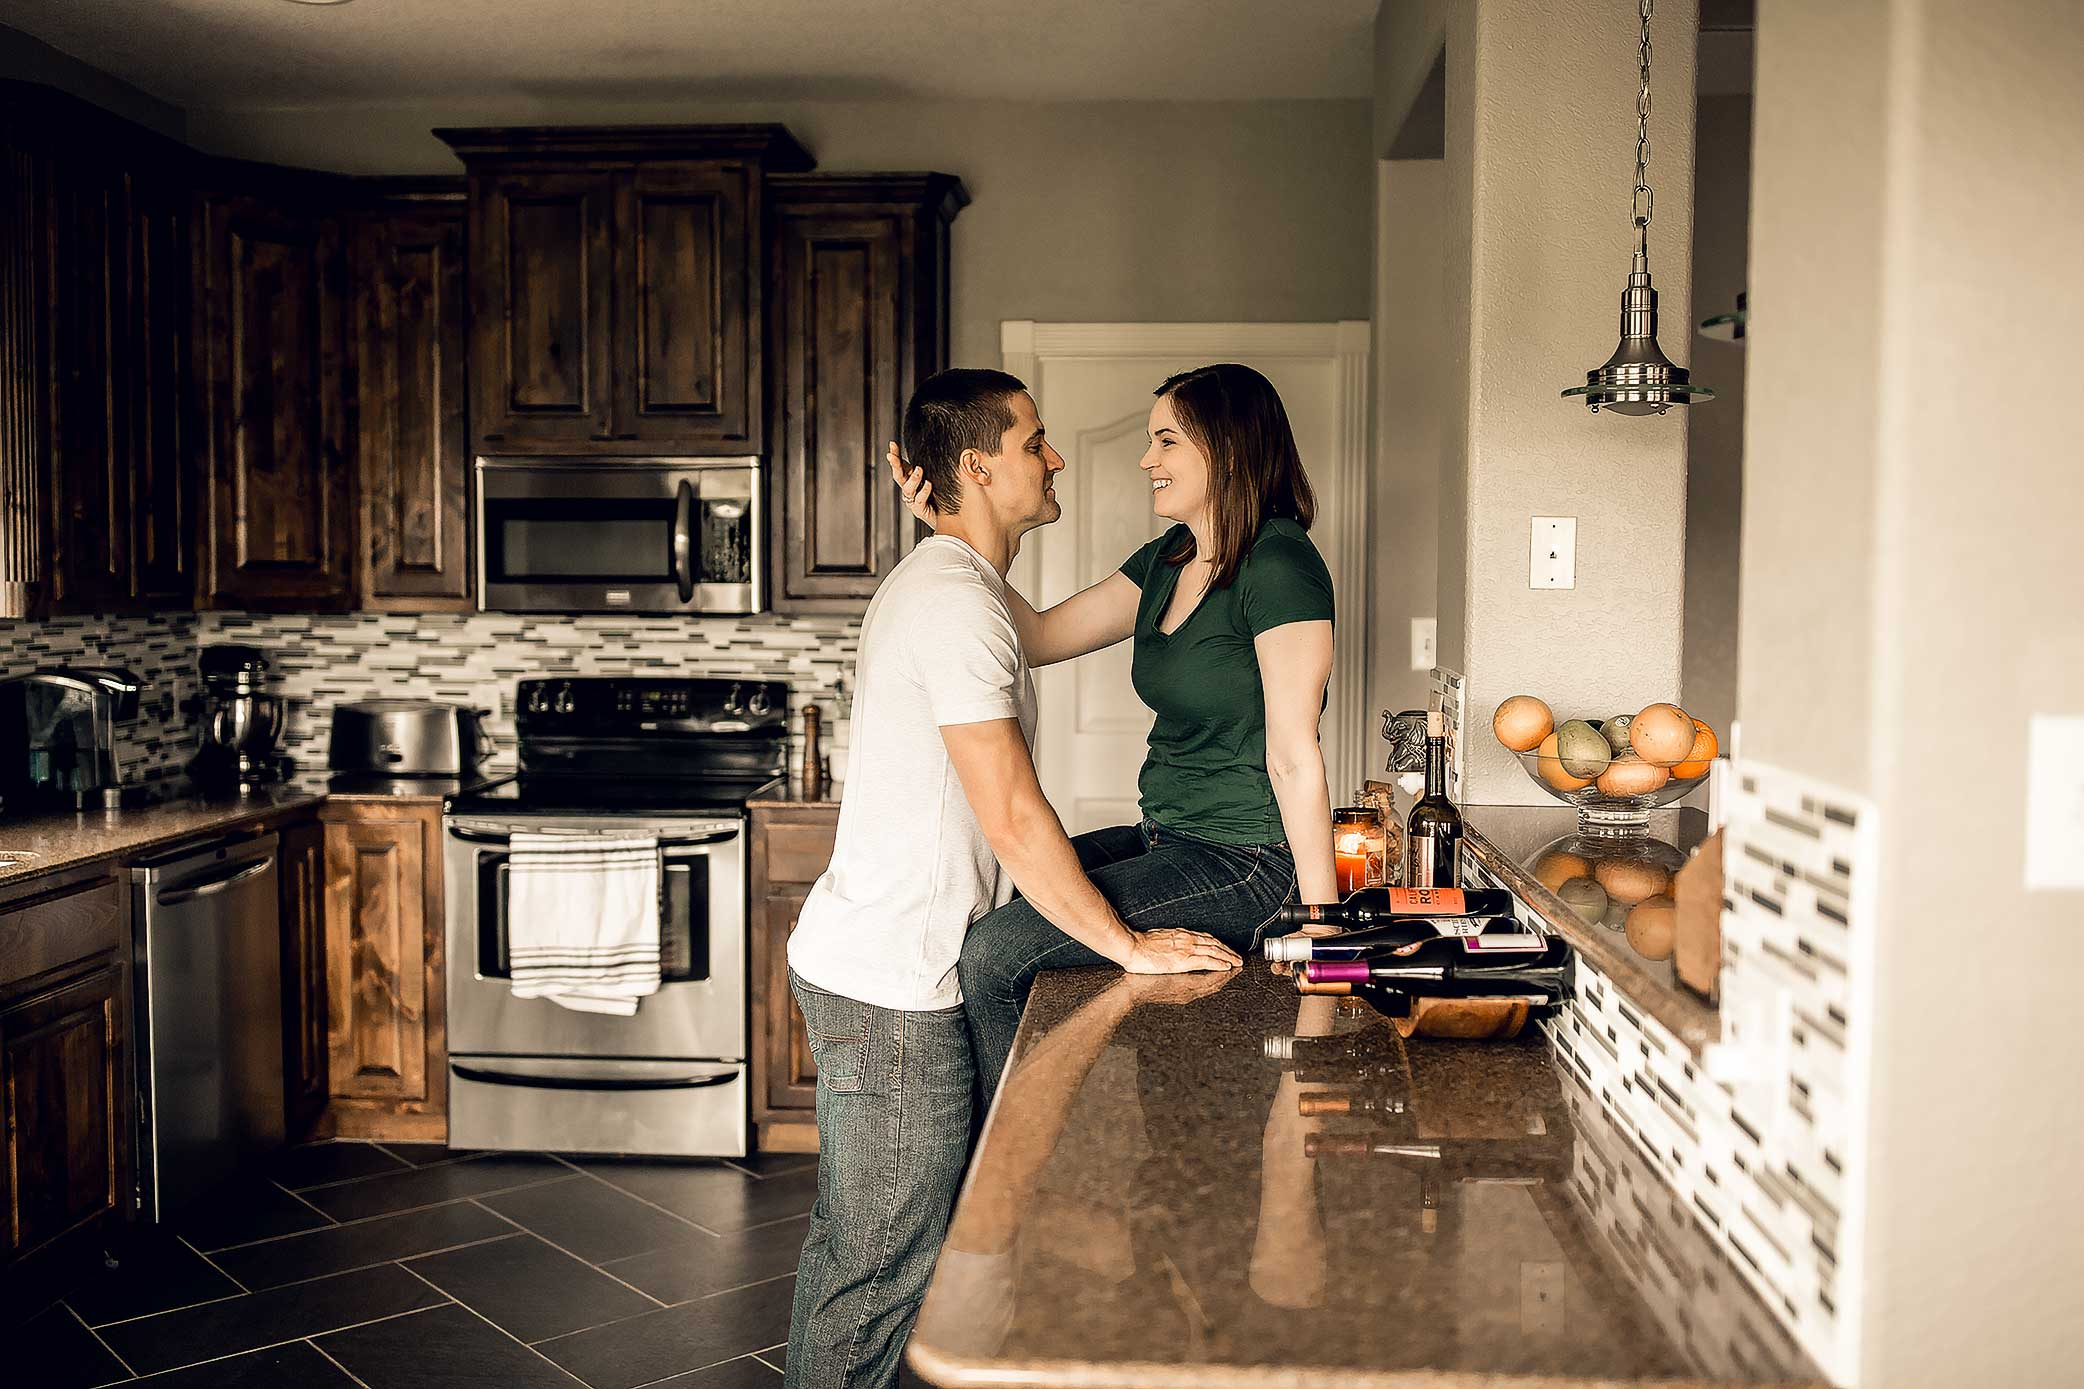 shelby-schiller-photography-lifestyle-home-couples-session-south-college-station-6.jpg